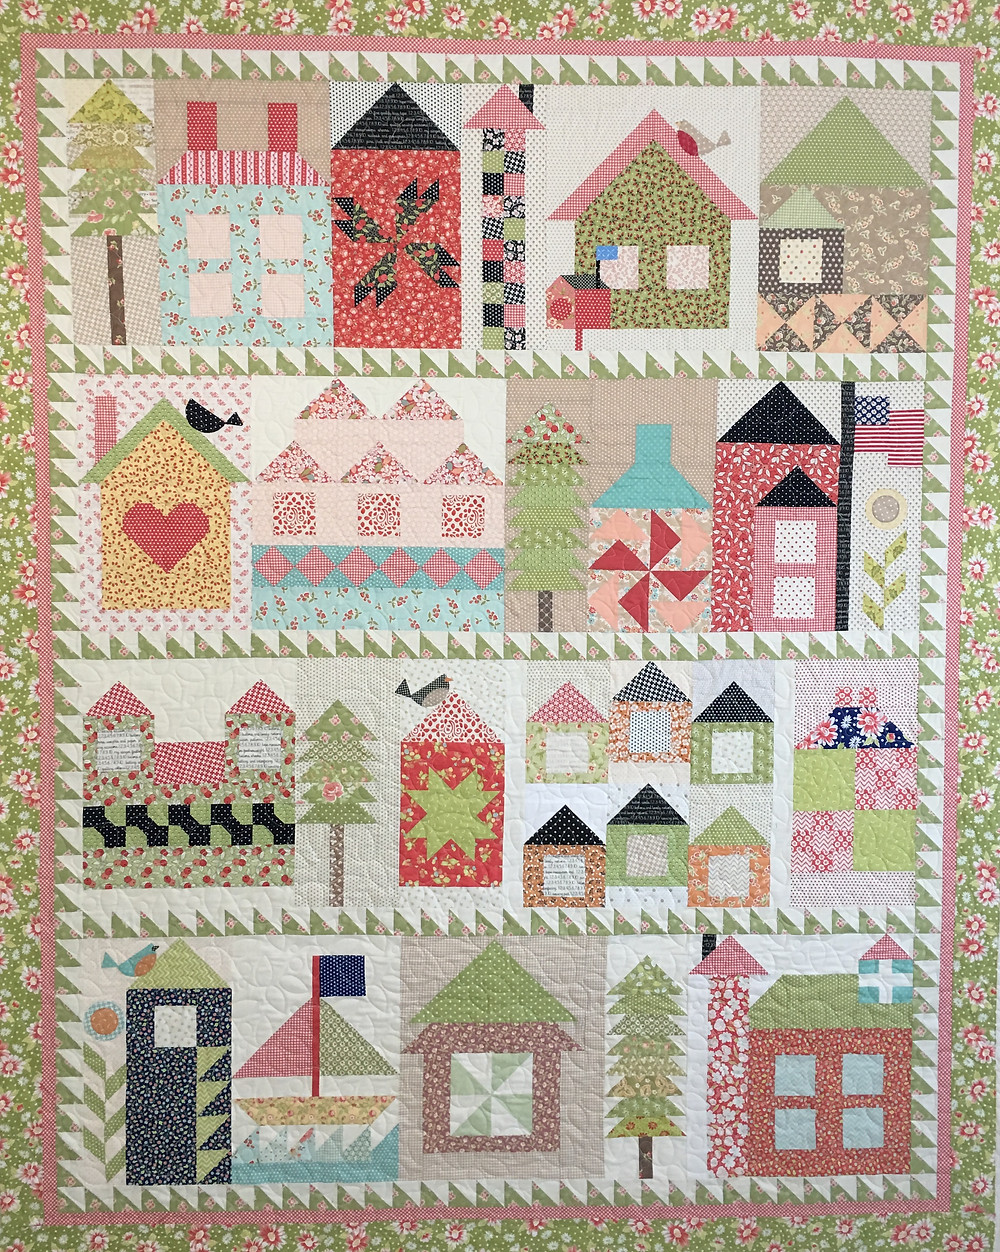 House Sampler Quilt by Deb Taylor